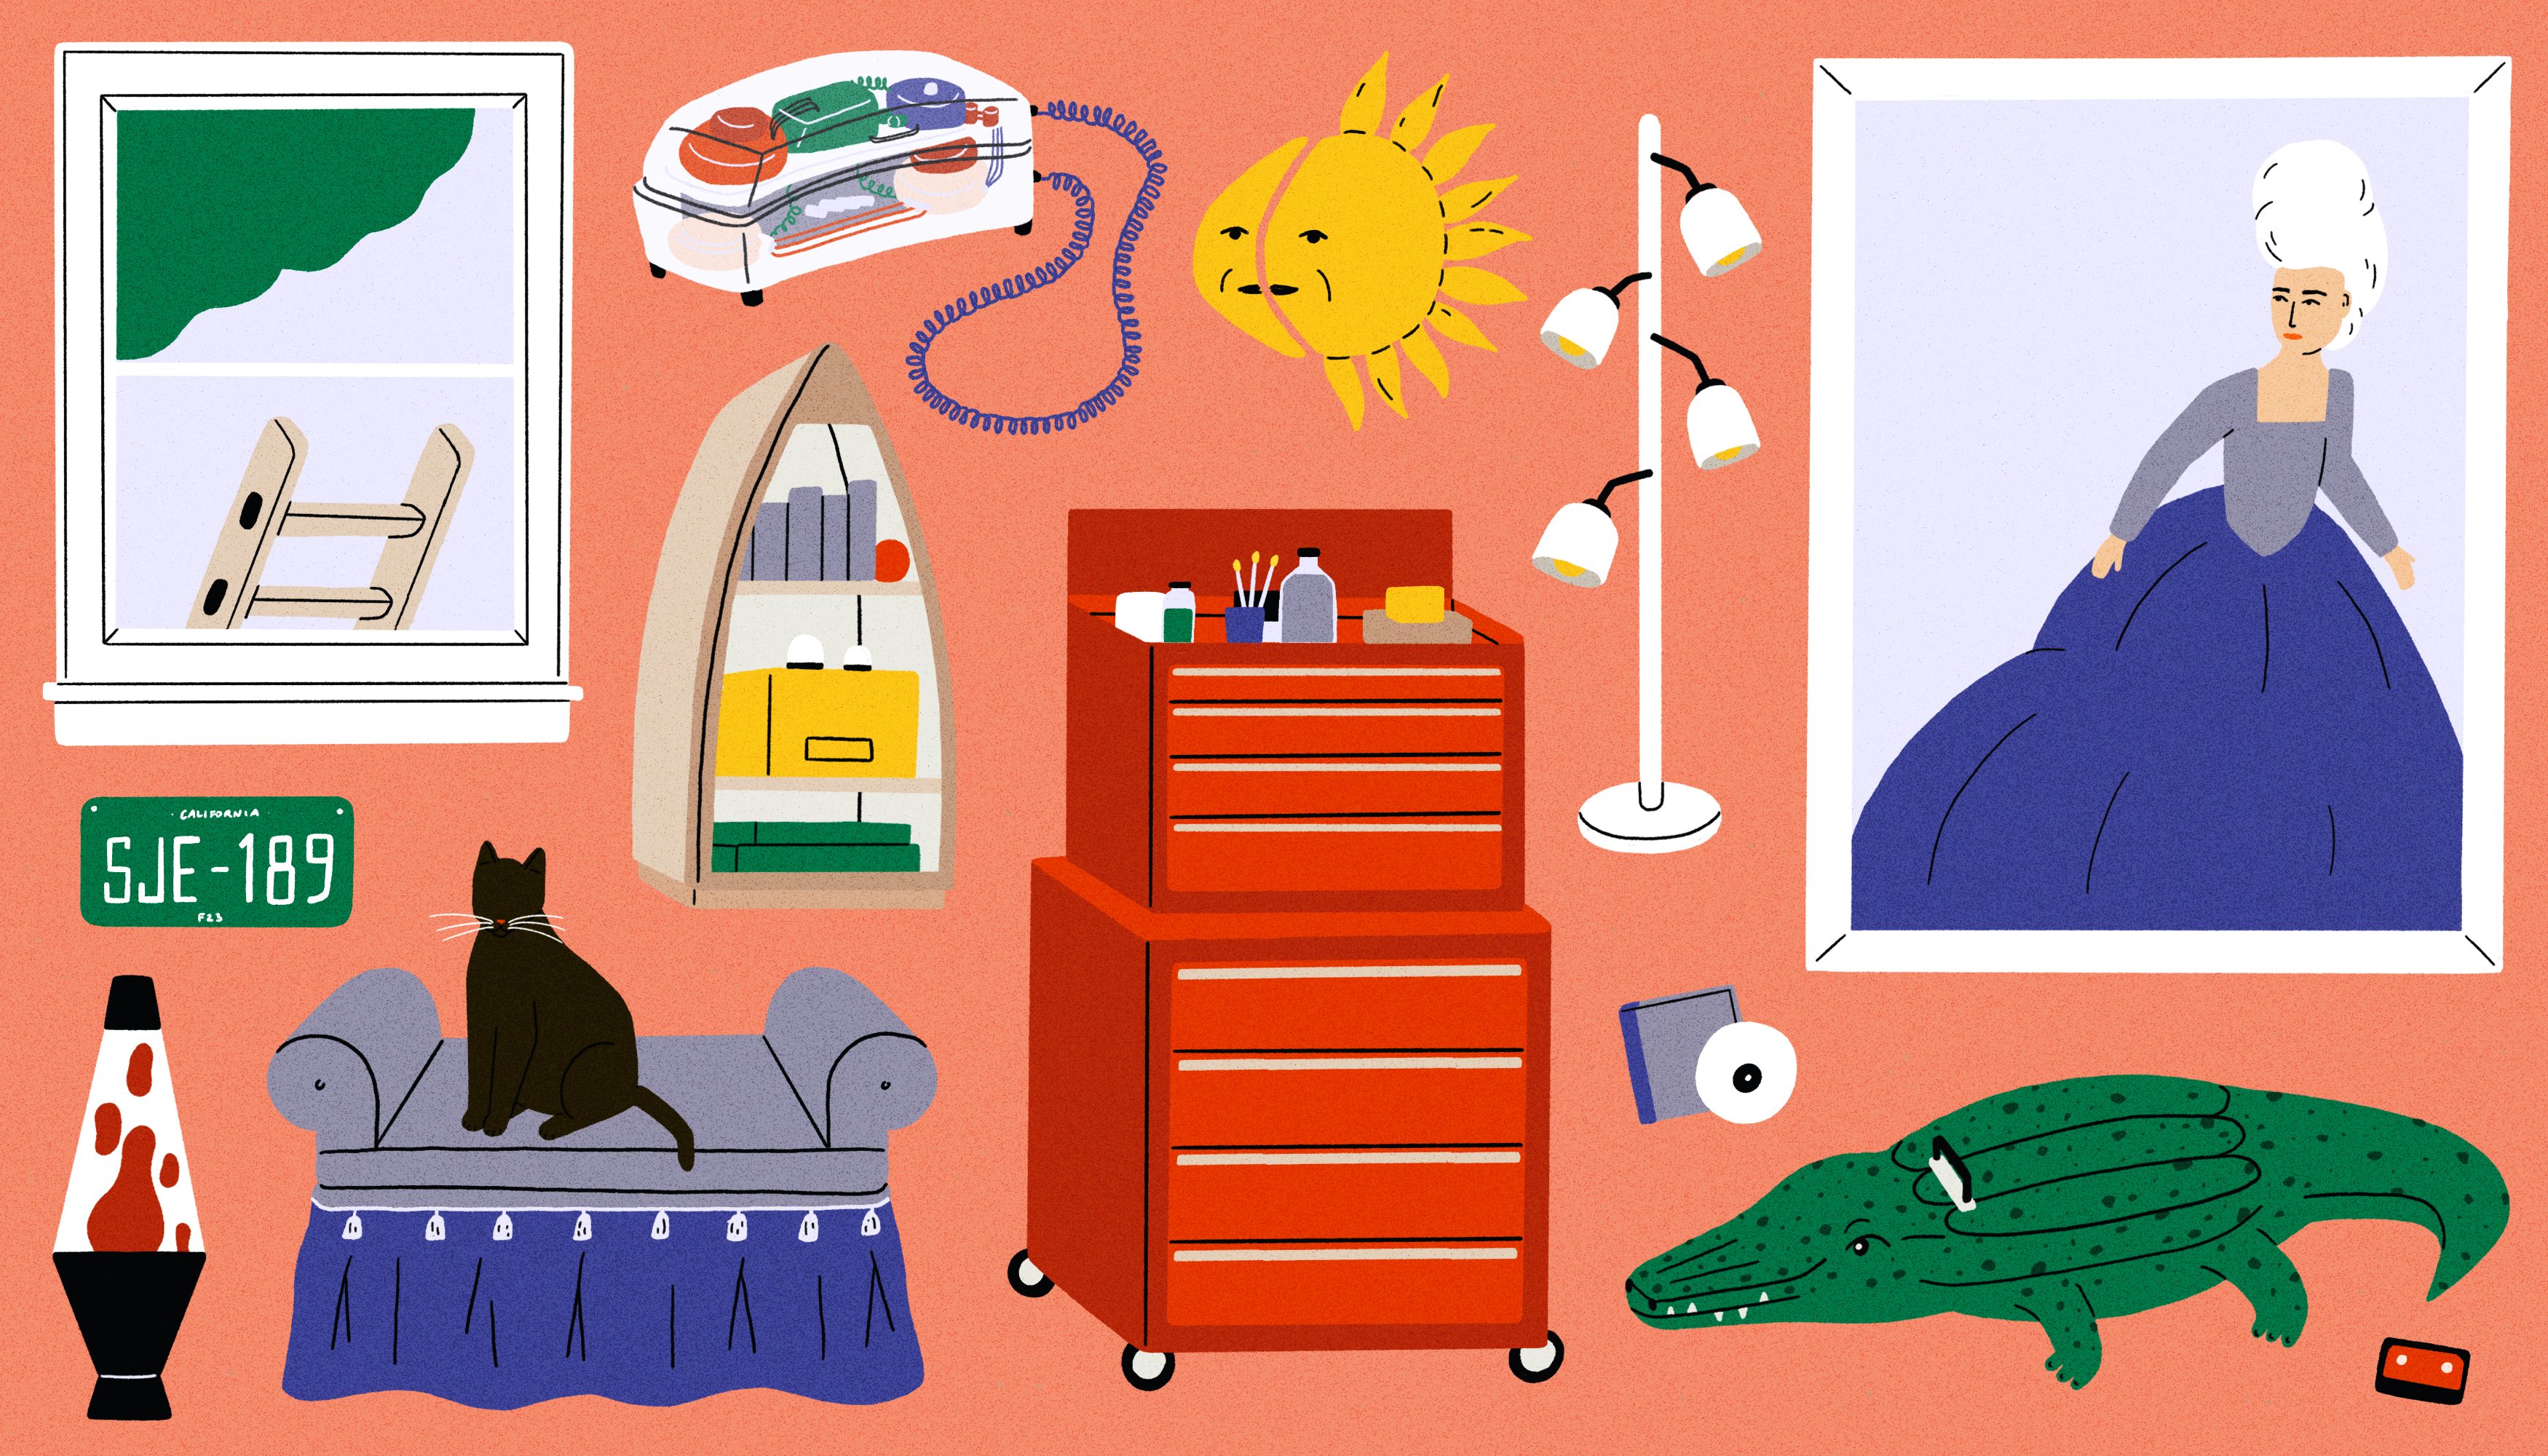 A room with a window that has a ladder, a chair that has a black cat on it, a dresser on wheels, an alligator, a movie poster, an ornamental sun, a lamp, and a street sign. This is an illustration.